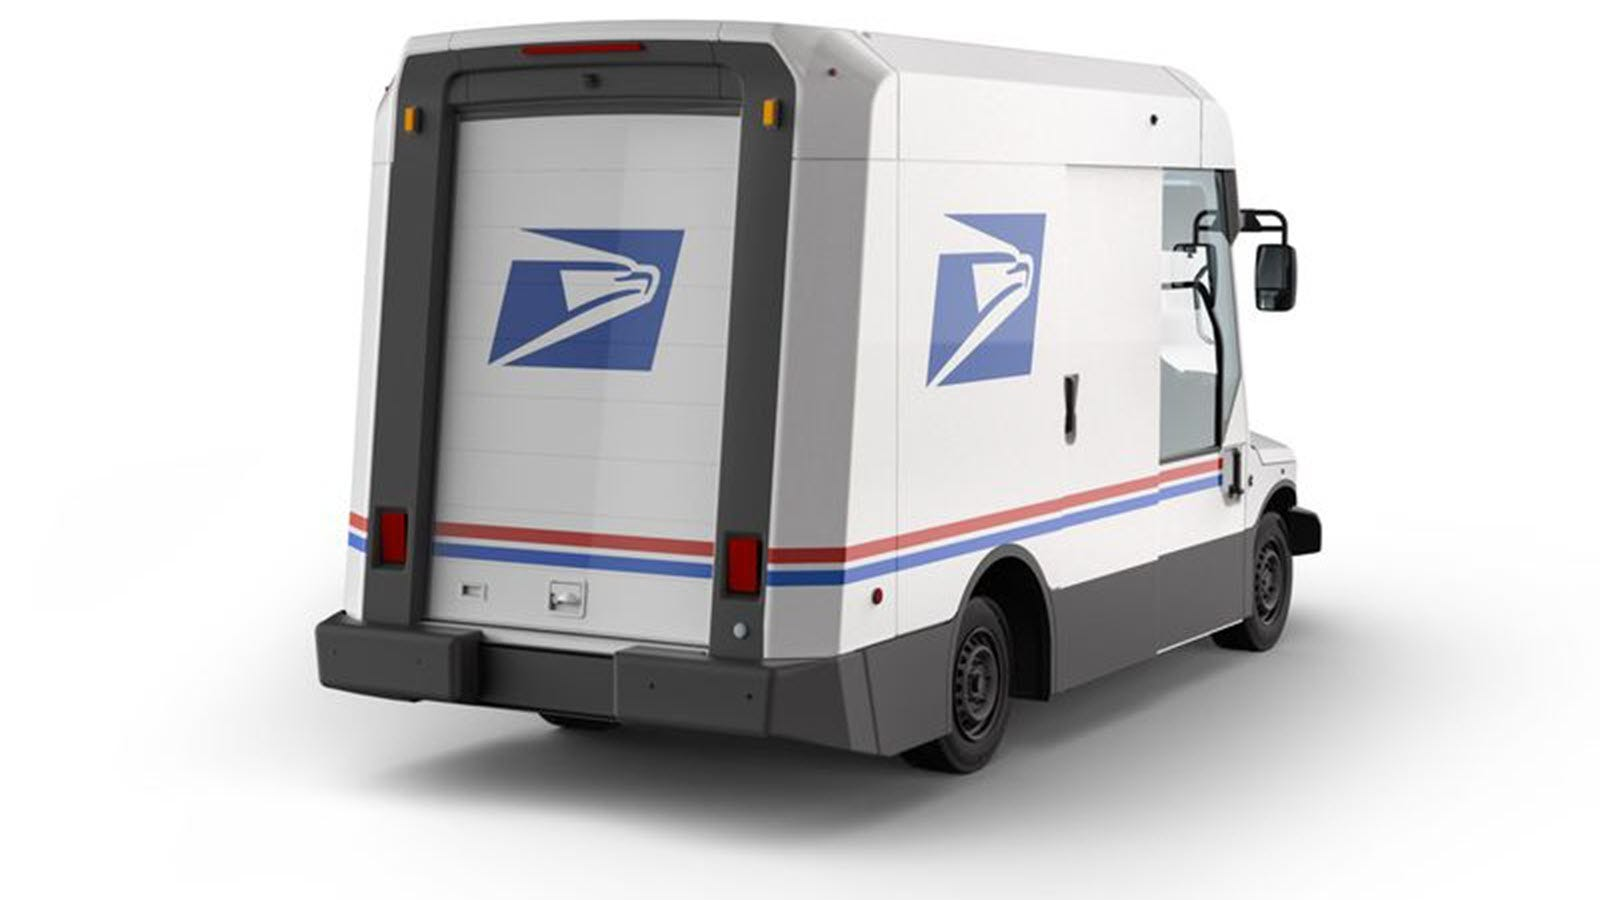 The backside of the new USPS mail truck